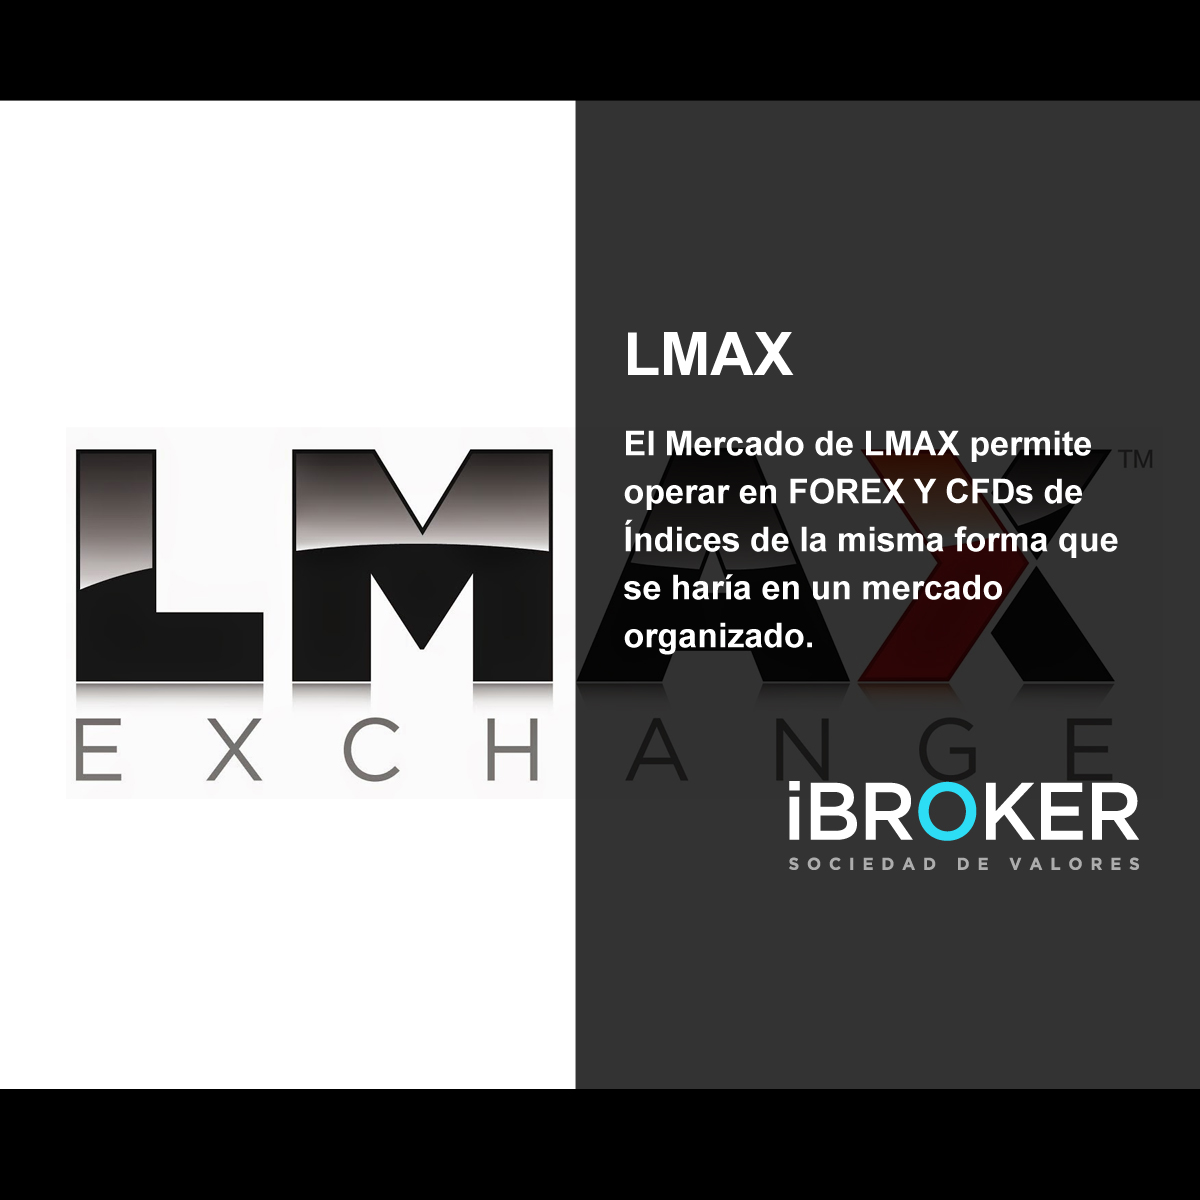 LMAX is a Forex Broker offering Forex Trading services via MetaTrader 4, MetaTrader 5, MT4 and MT5 Mobile trading platforms. Regarding orders execution model, LMAX is a MTF (Multilateral Trading Facility) exchange for forex trading. LMAX offers trading of currencies, indices, and commodities. LMAX is regulated by the FCA (UK).